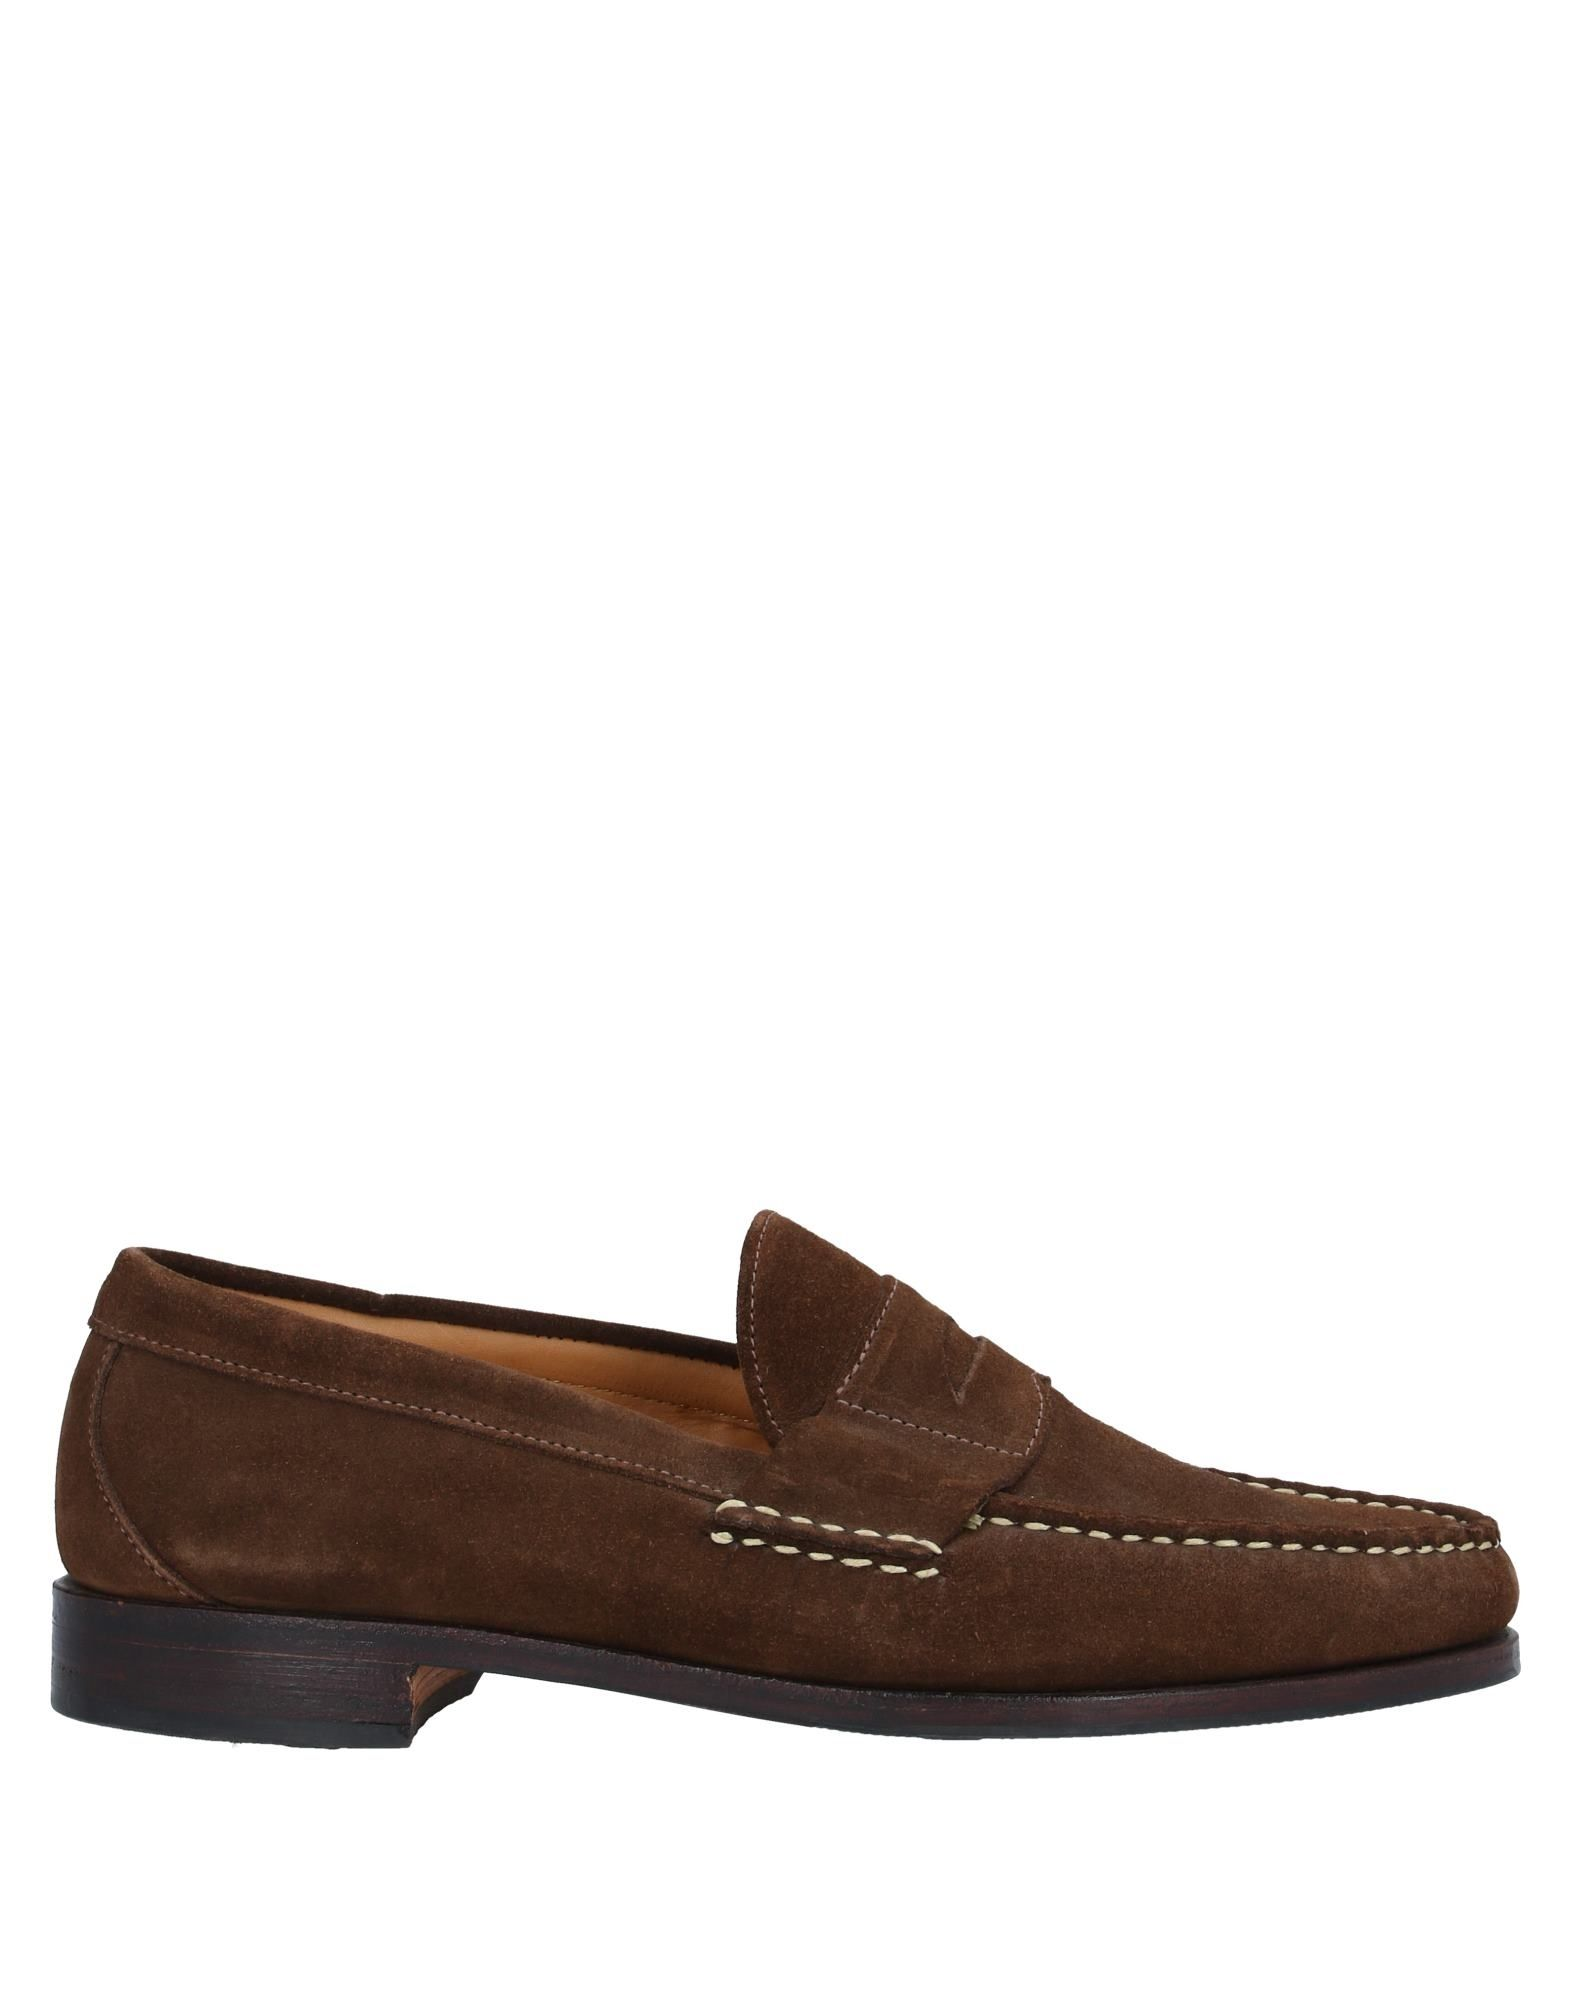 ALLEN EDMONDS Loafers. suede effect, stitching, solid color, round toeline, flat, leather lining, leather/rubber sole, contains non-textile parts of animal origin, small sized. Soft Leather